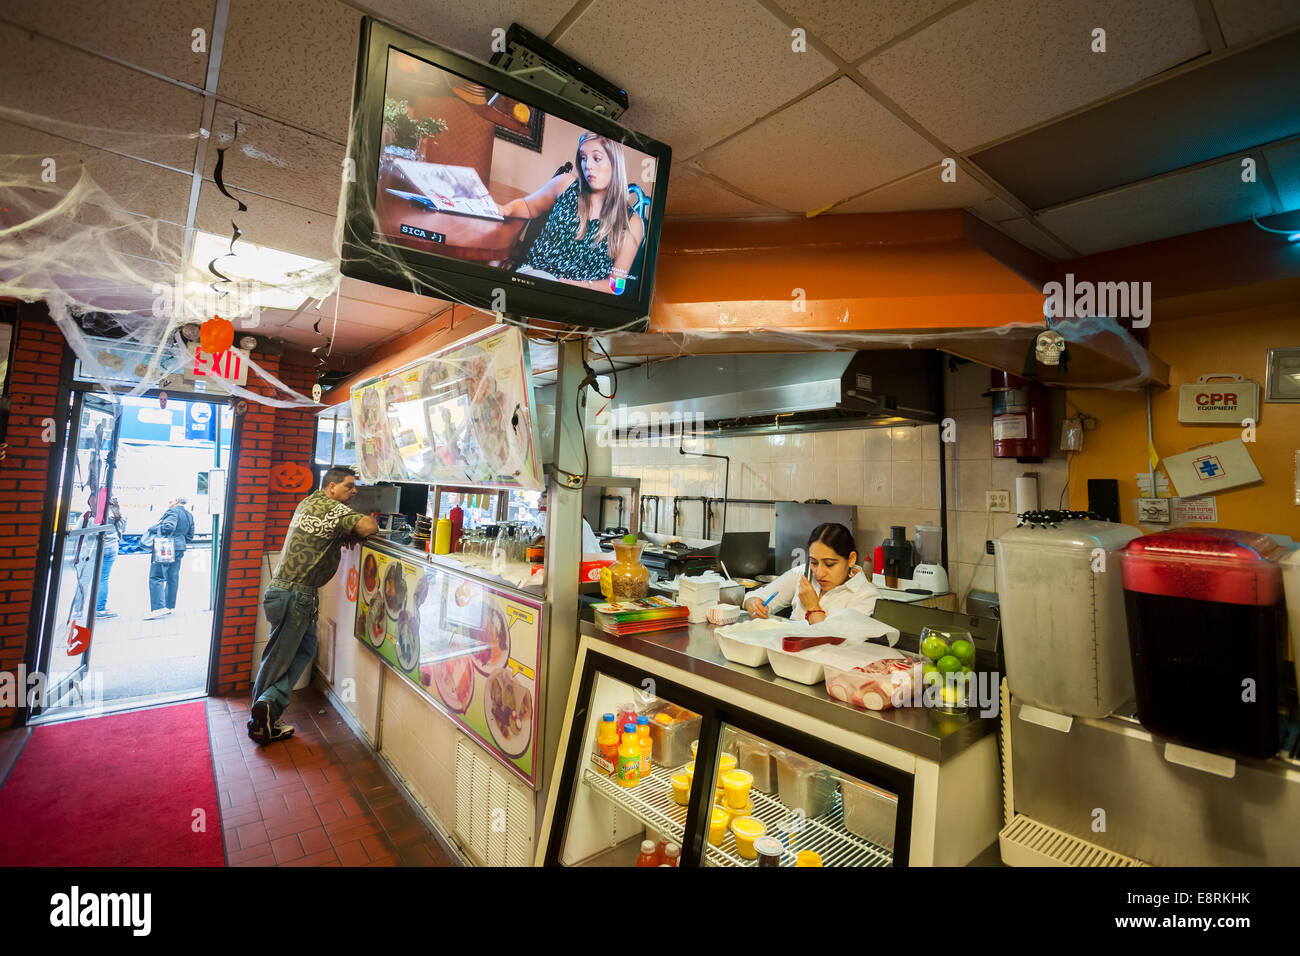 Telenovelas (Hispanic soap operas) play on a television in an Hispanic restaurant in the community of Jackson Heights - Stock Image